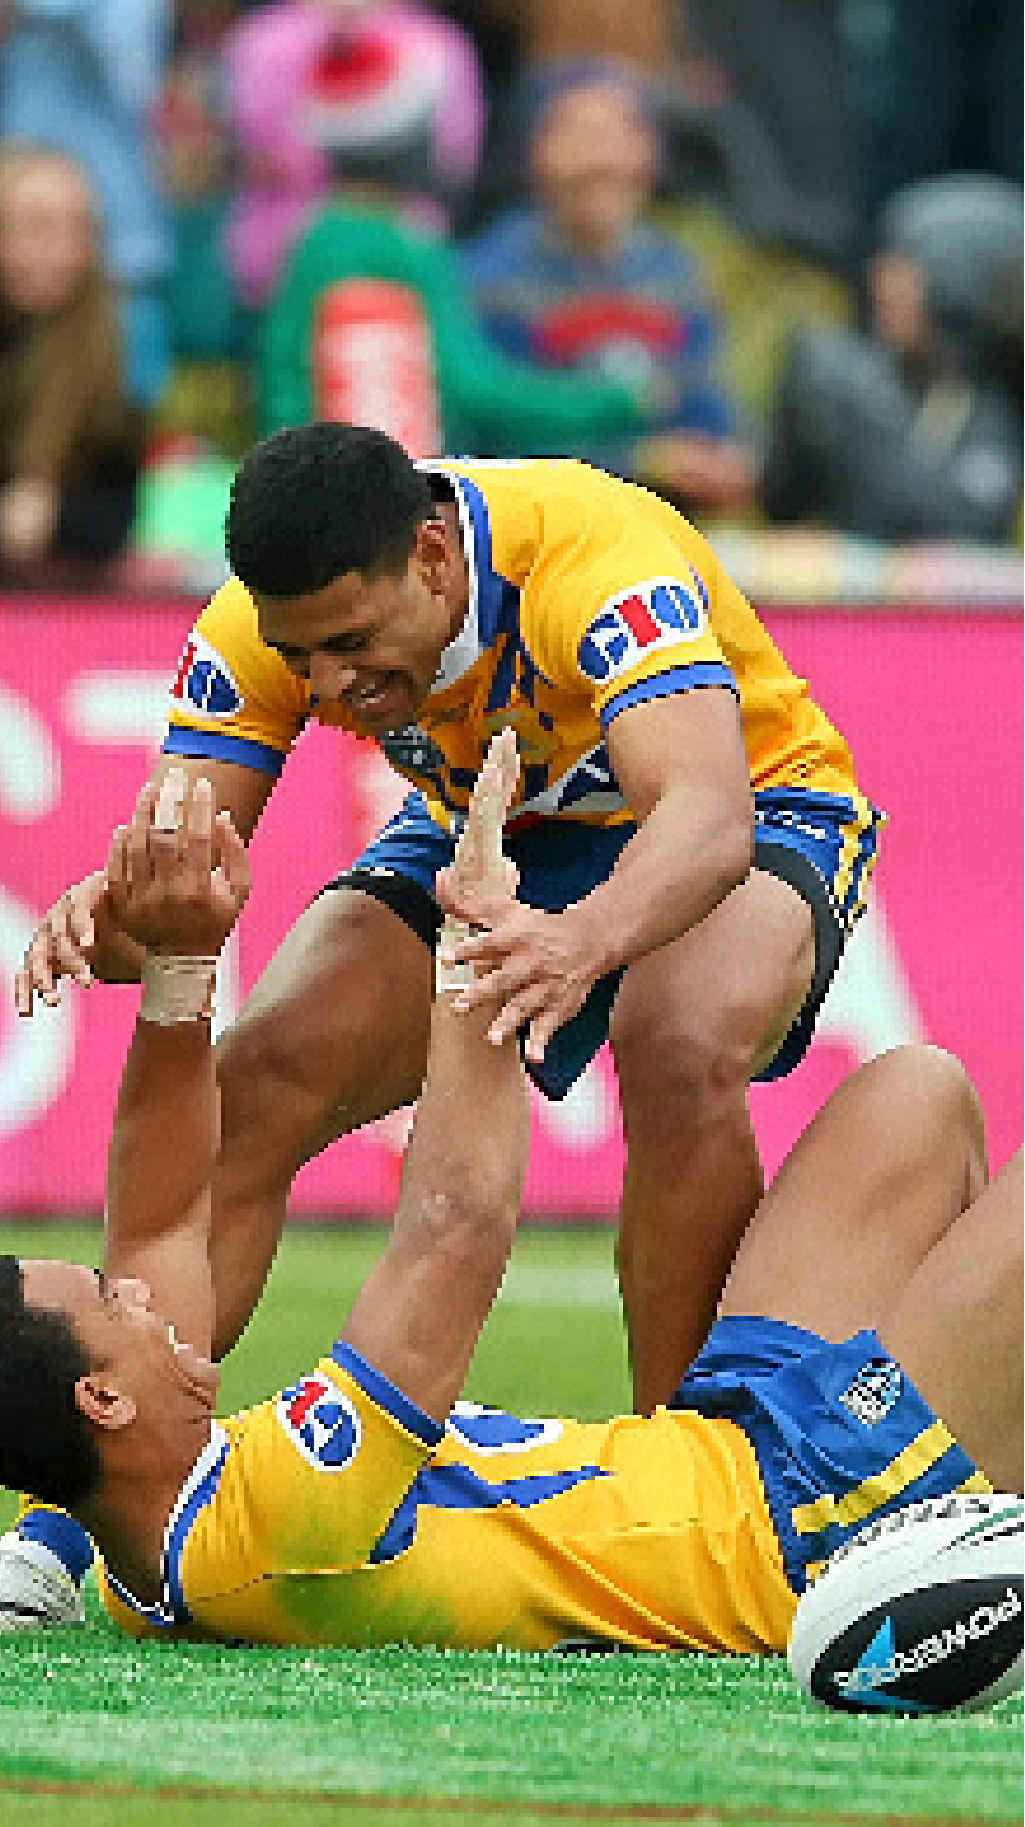 Will Hopoate of City celebrates with Daniel Tupou of after scoring a try in the last minute of the match against Country.